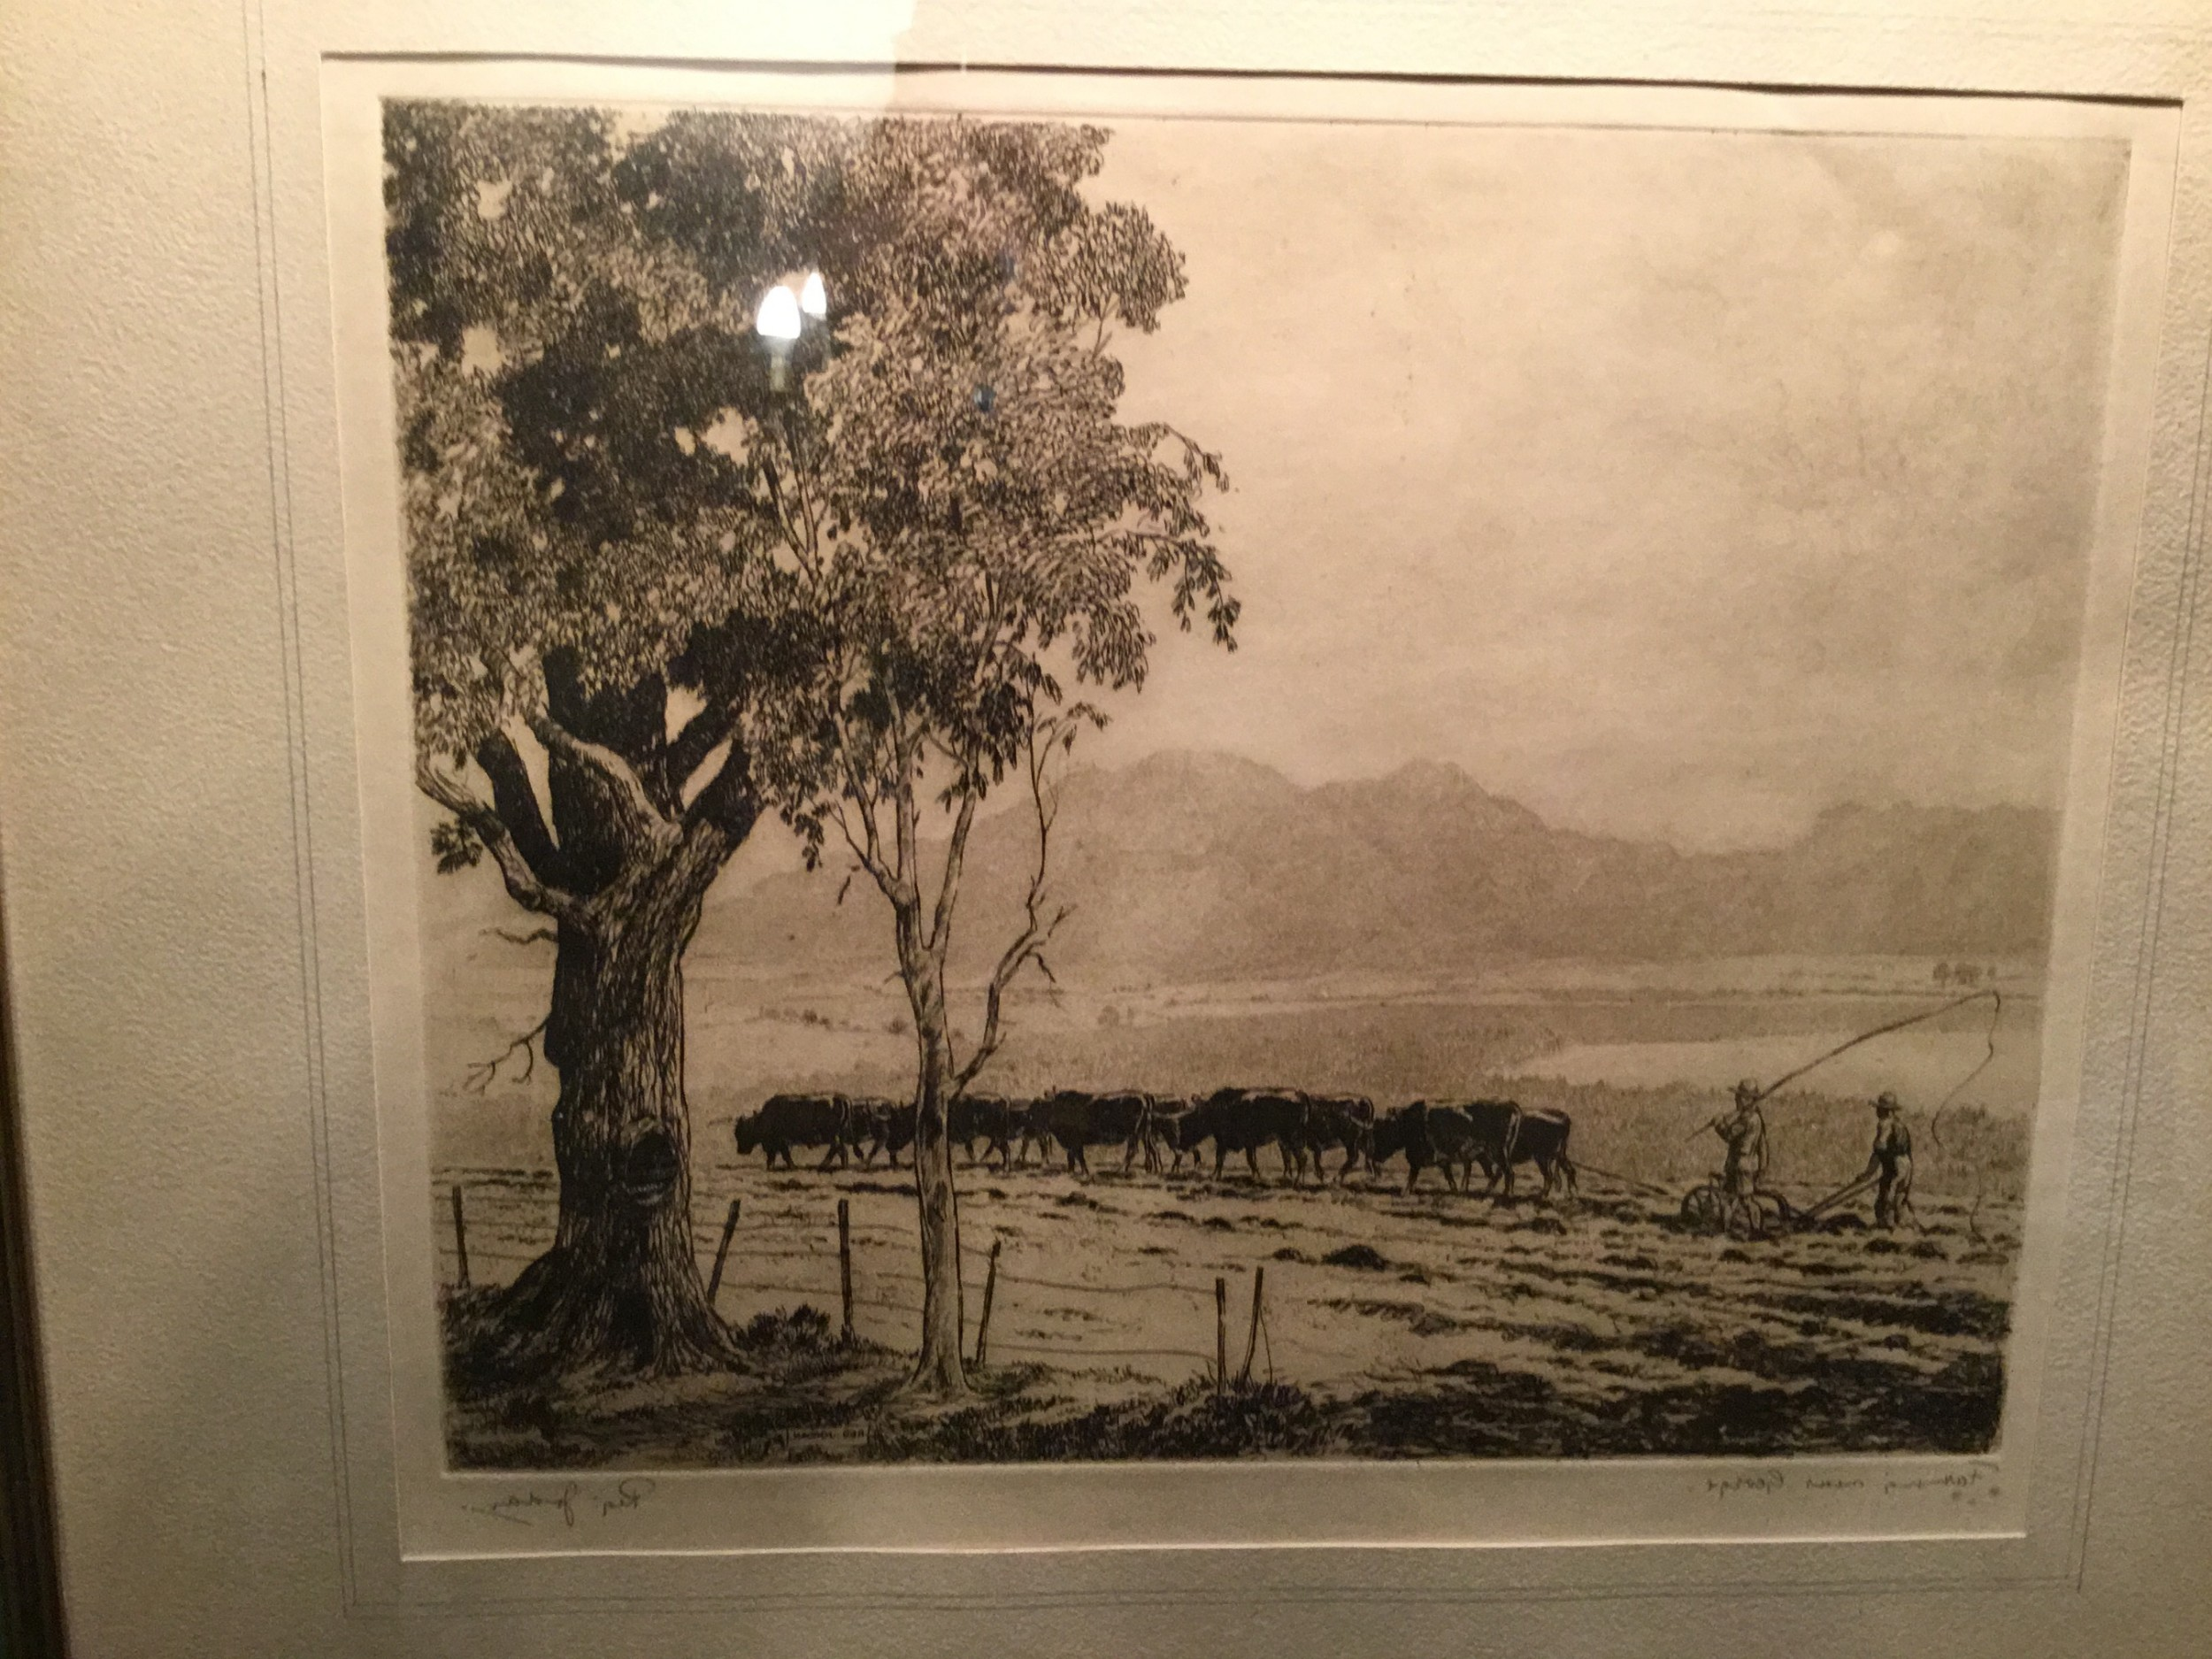 farming near george signed lithographic print by south african artist reg jordan